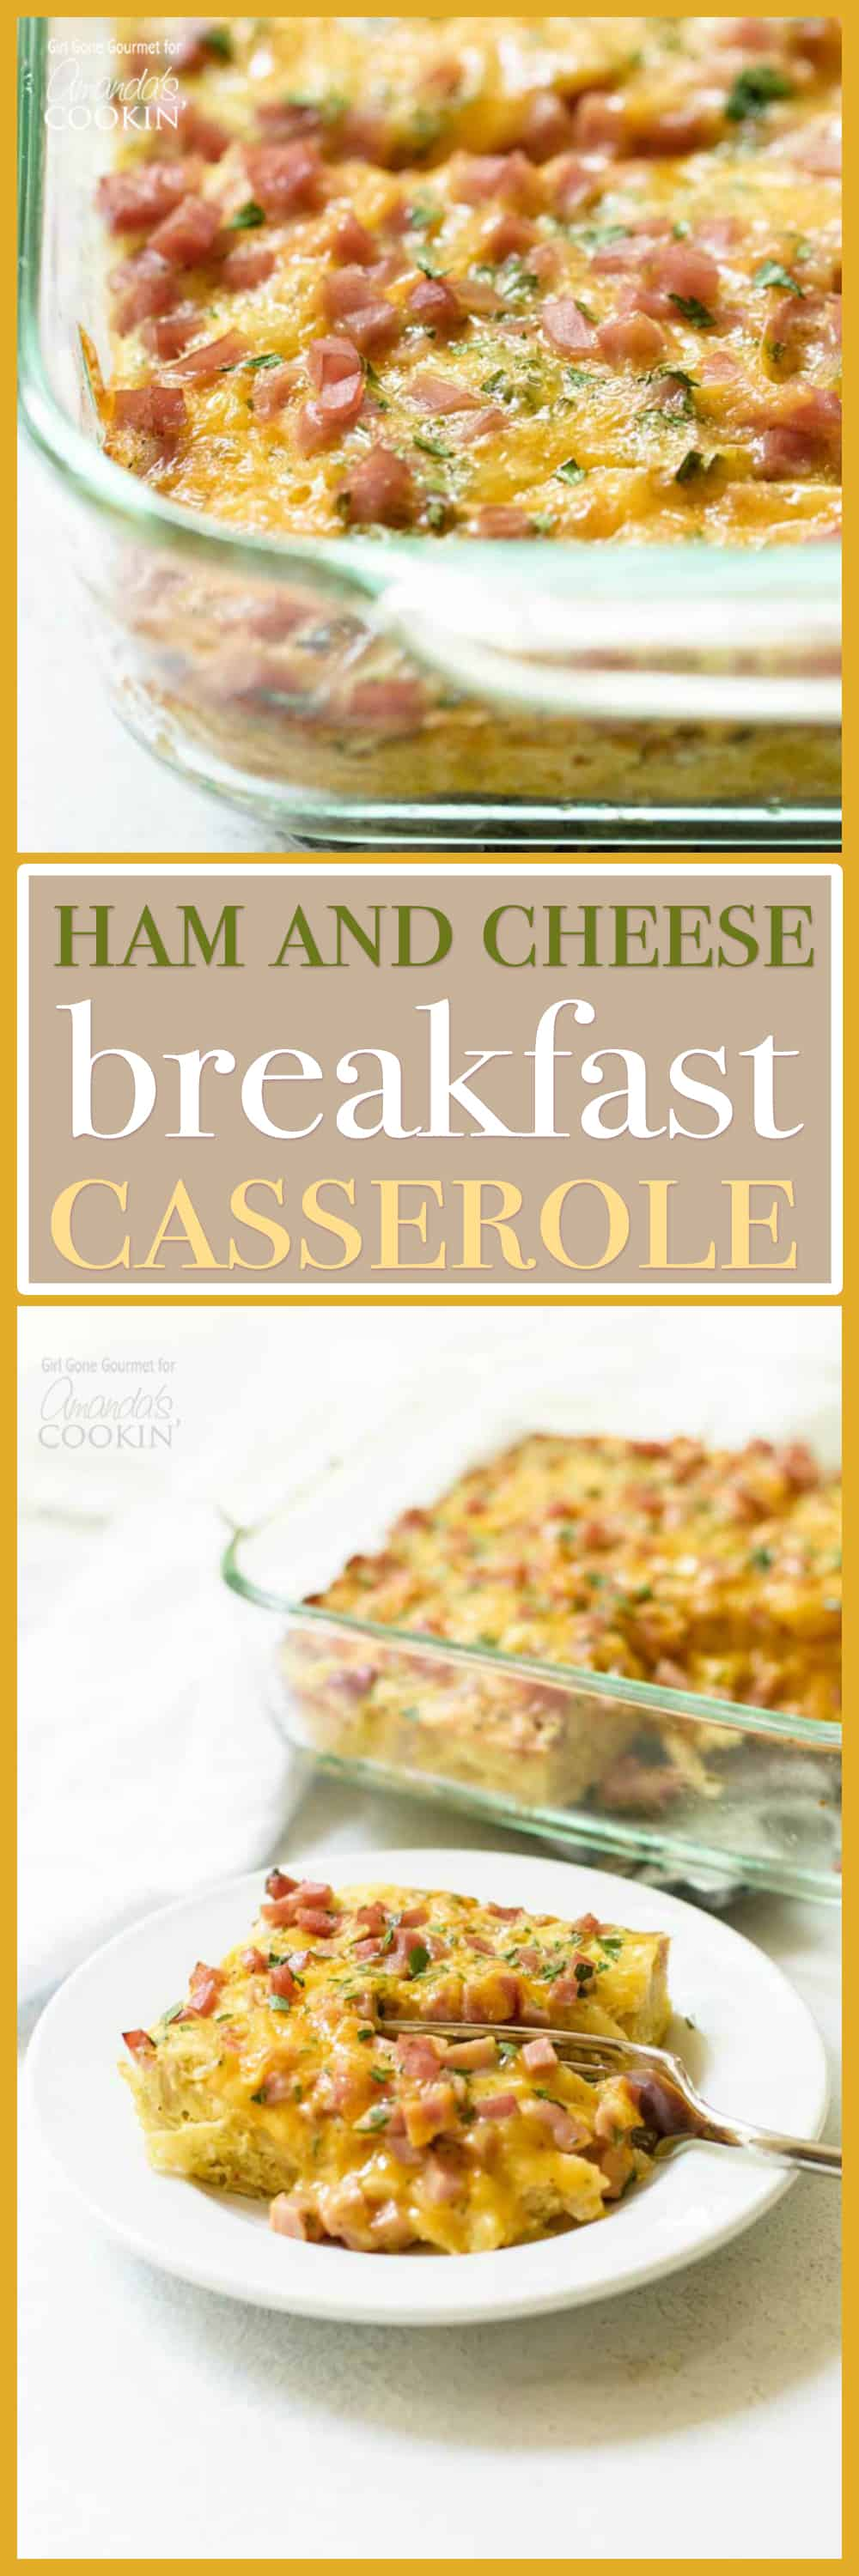 This breakfast casserole with ham and cheese serves four and is so simple to make it will be your go-to breakfast during the busy work week!